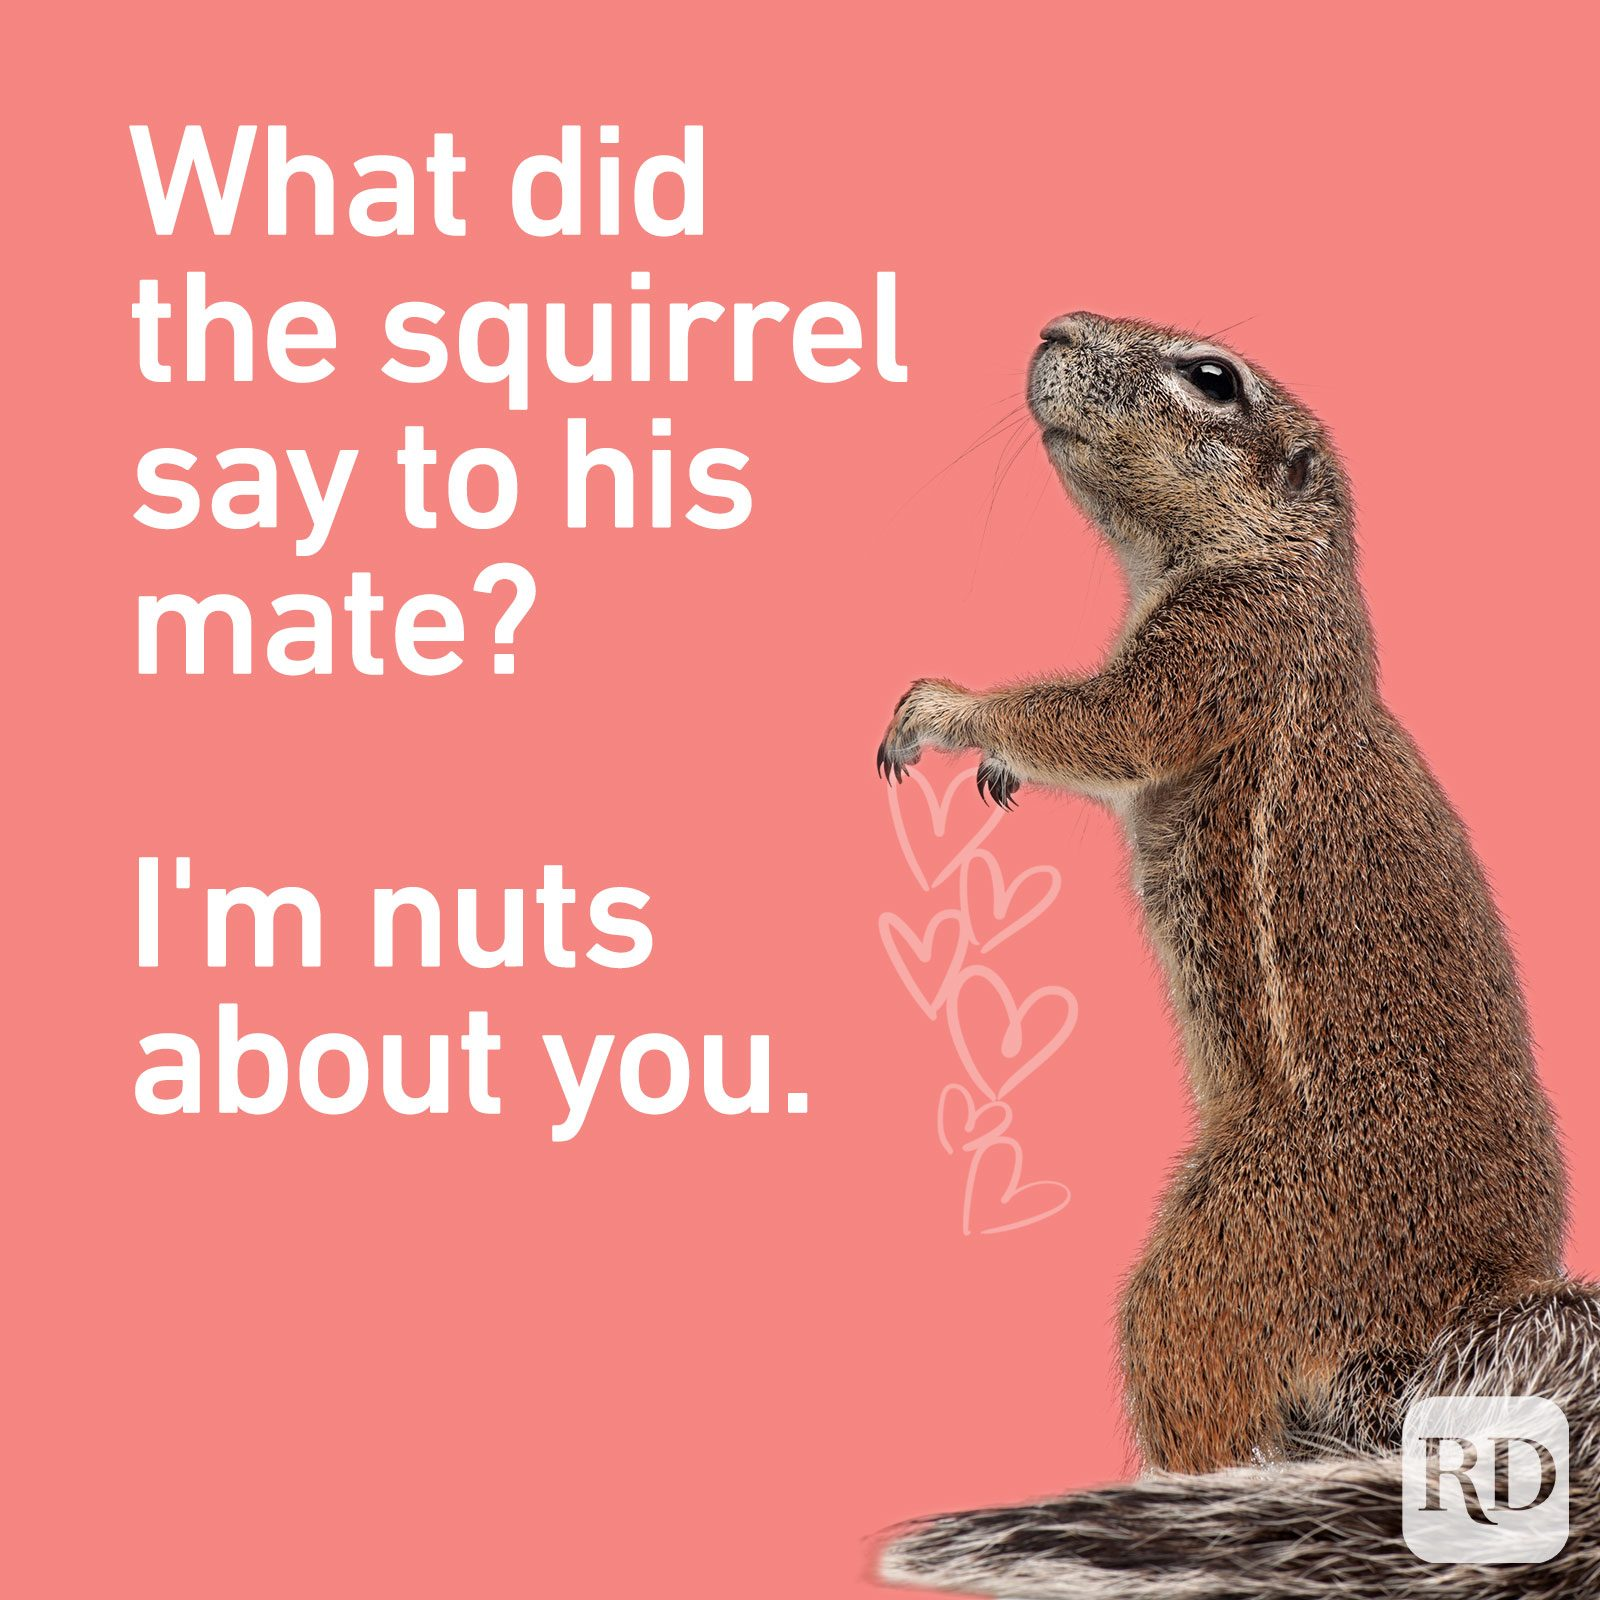 What did the squirrel say to his mate? I'm nuts about you.